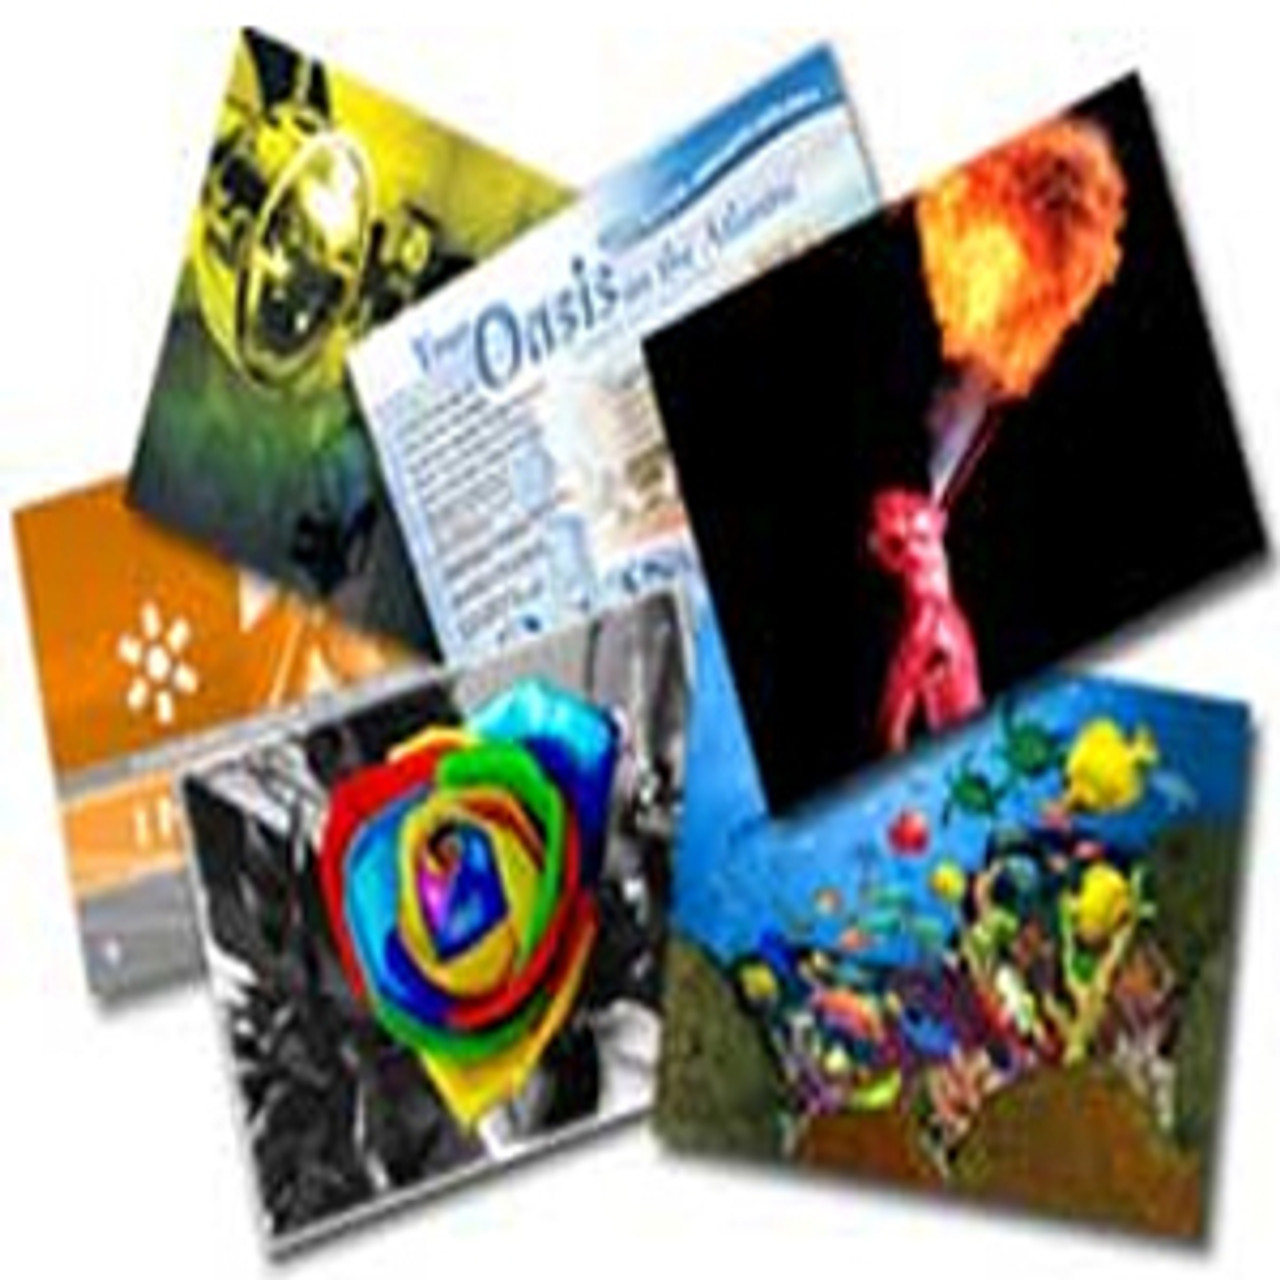 Product Description Post Cards - printed full color, both sides on high quality 16 pt ultra bright white stock with your choice of  High gloss UV, Matte or Uncoated Finish.  Full bleed included, no setup charges if art submitted is acceptable. (If you desire, you can notate that you wish 14pt cardstock instead of 16pt)  Templates available for download. Visit Template Page